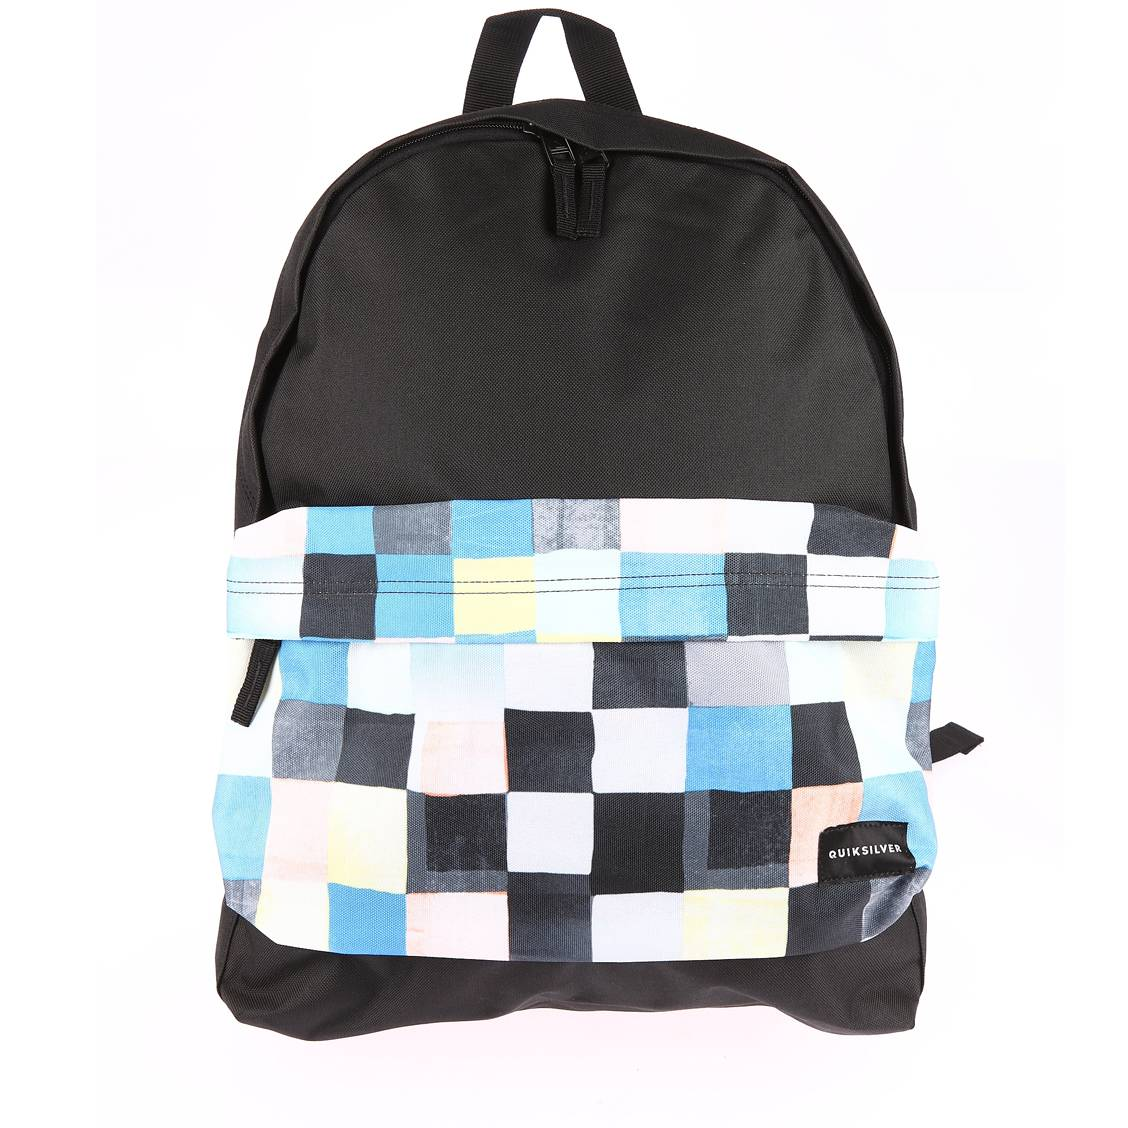 Sac à dos  everyday poster 25 l noir à carreaux multicolores